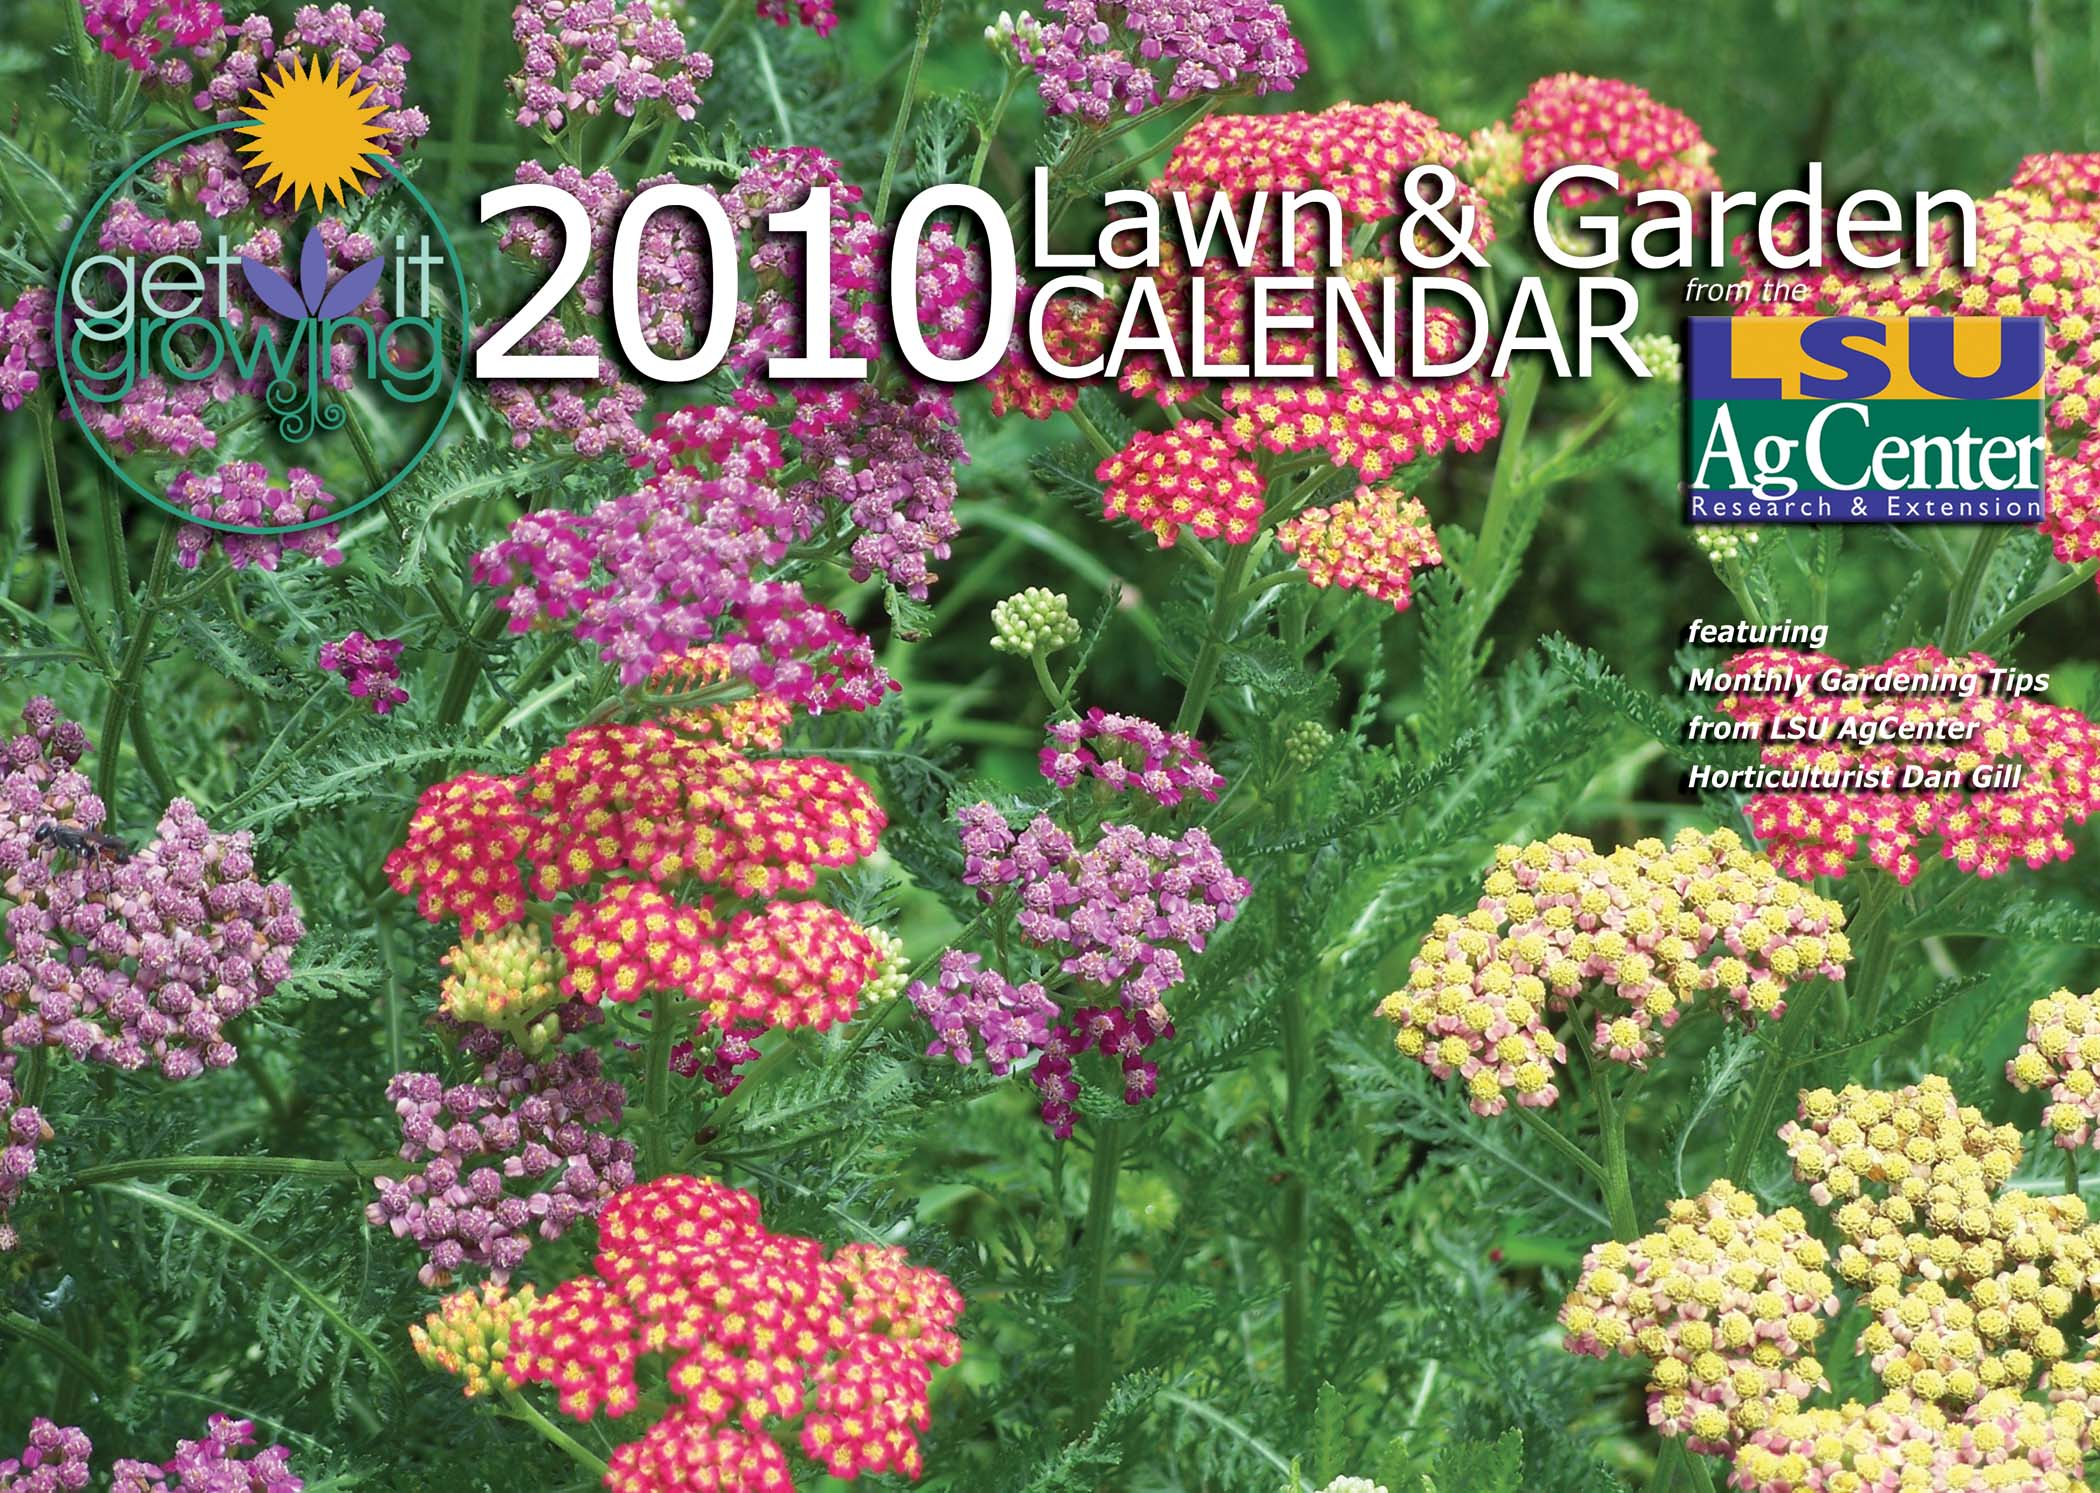 LSU AgCenter's 2010 Get It Growing calendar makes great holiday gift